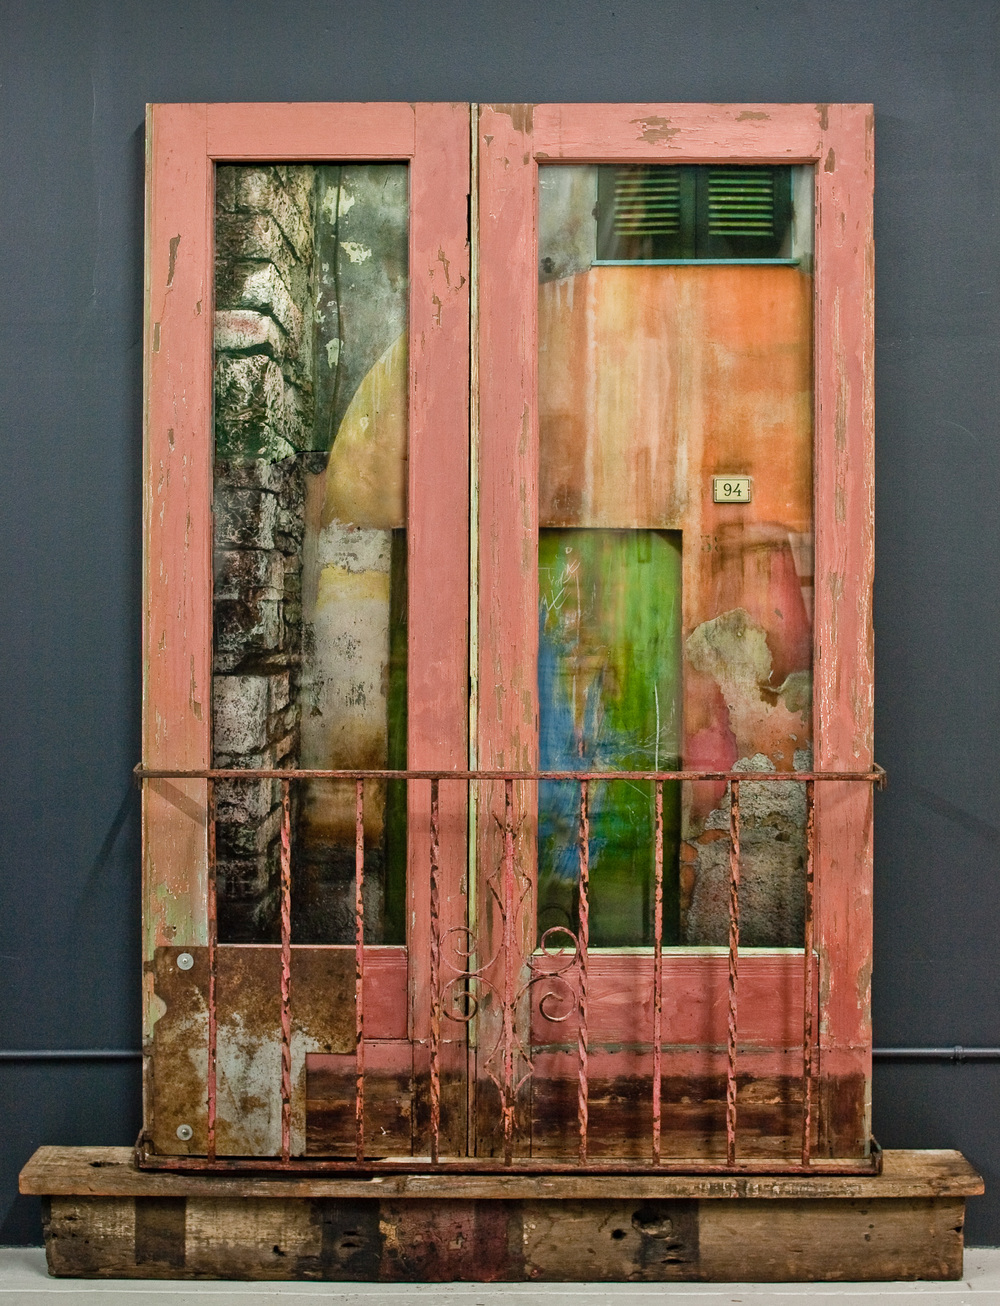 """ Spello Construction "" Painted film, chalk pastel, painted wood, metal, glass 96"" x 56"" x 6 inches Jeannie O'Connor"